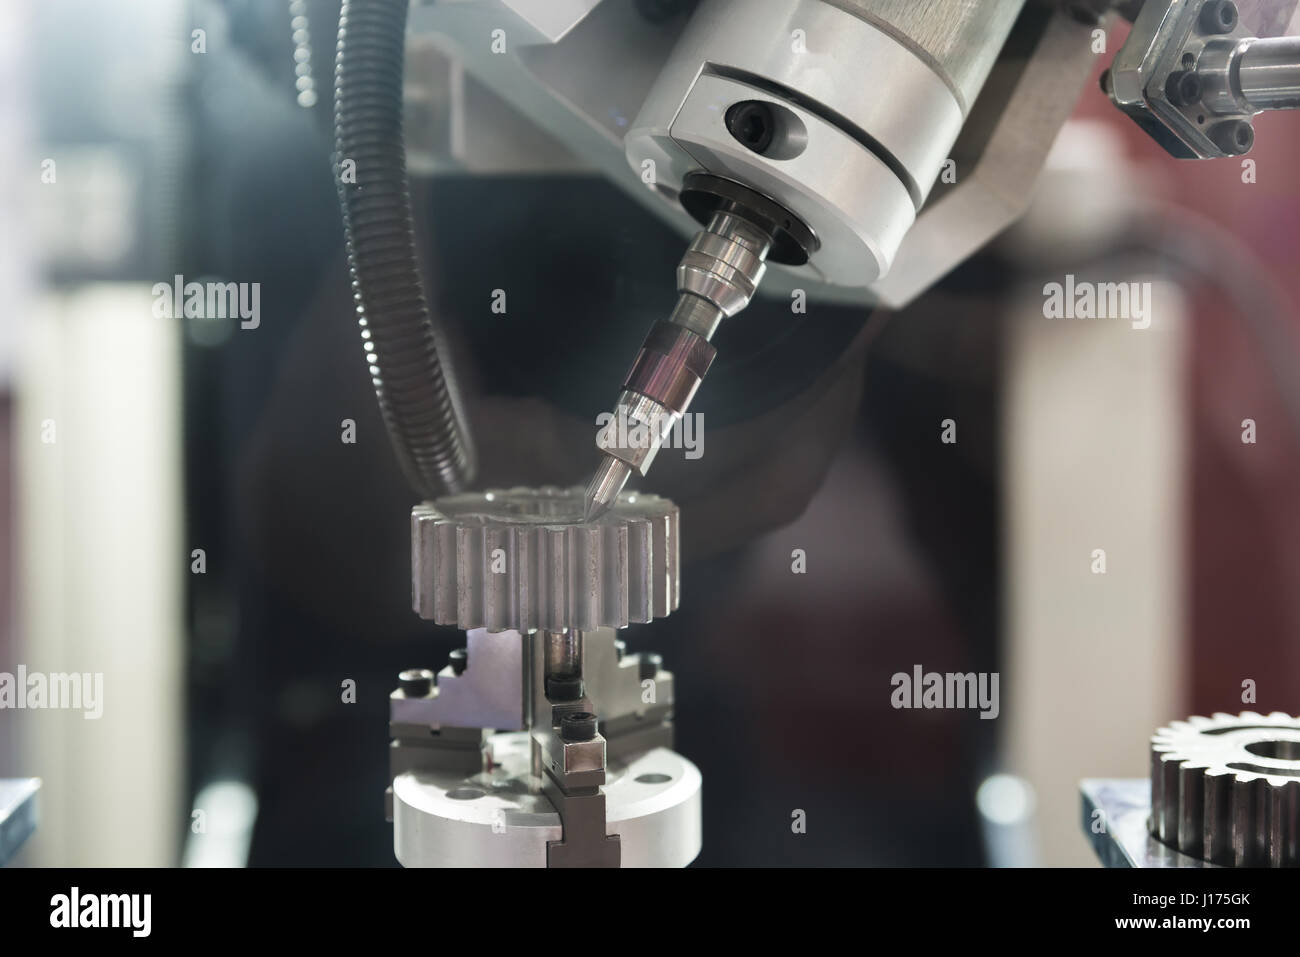 The five-axis Computer Numerical Control (CNC) machine while cutting sample gear part. Indutrial machine. - Stock Image